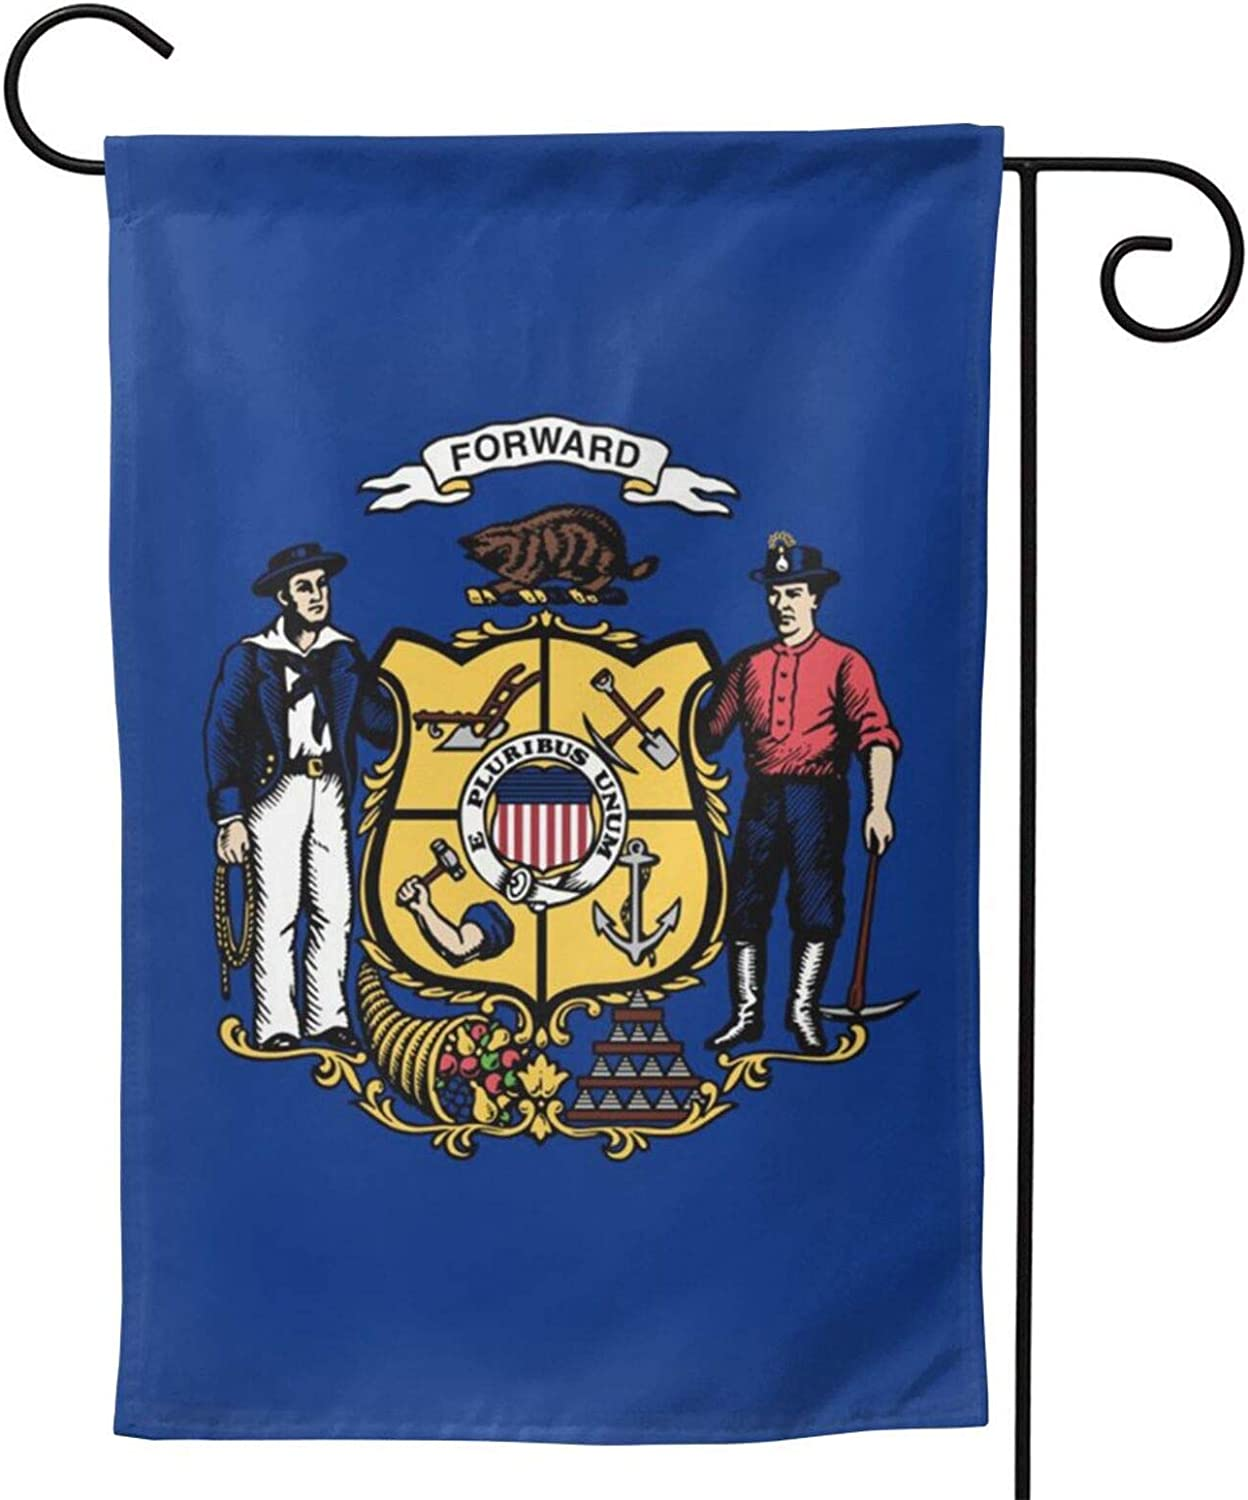 ainidamiss Massachusetts Ma Double Sided Garden Flag, Premium Material, Outdoor Decorative Small Flags for Home House Garden Yard Lawn Patio, 12.5 x 18.5 inc